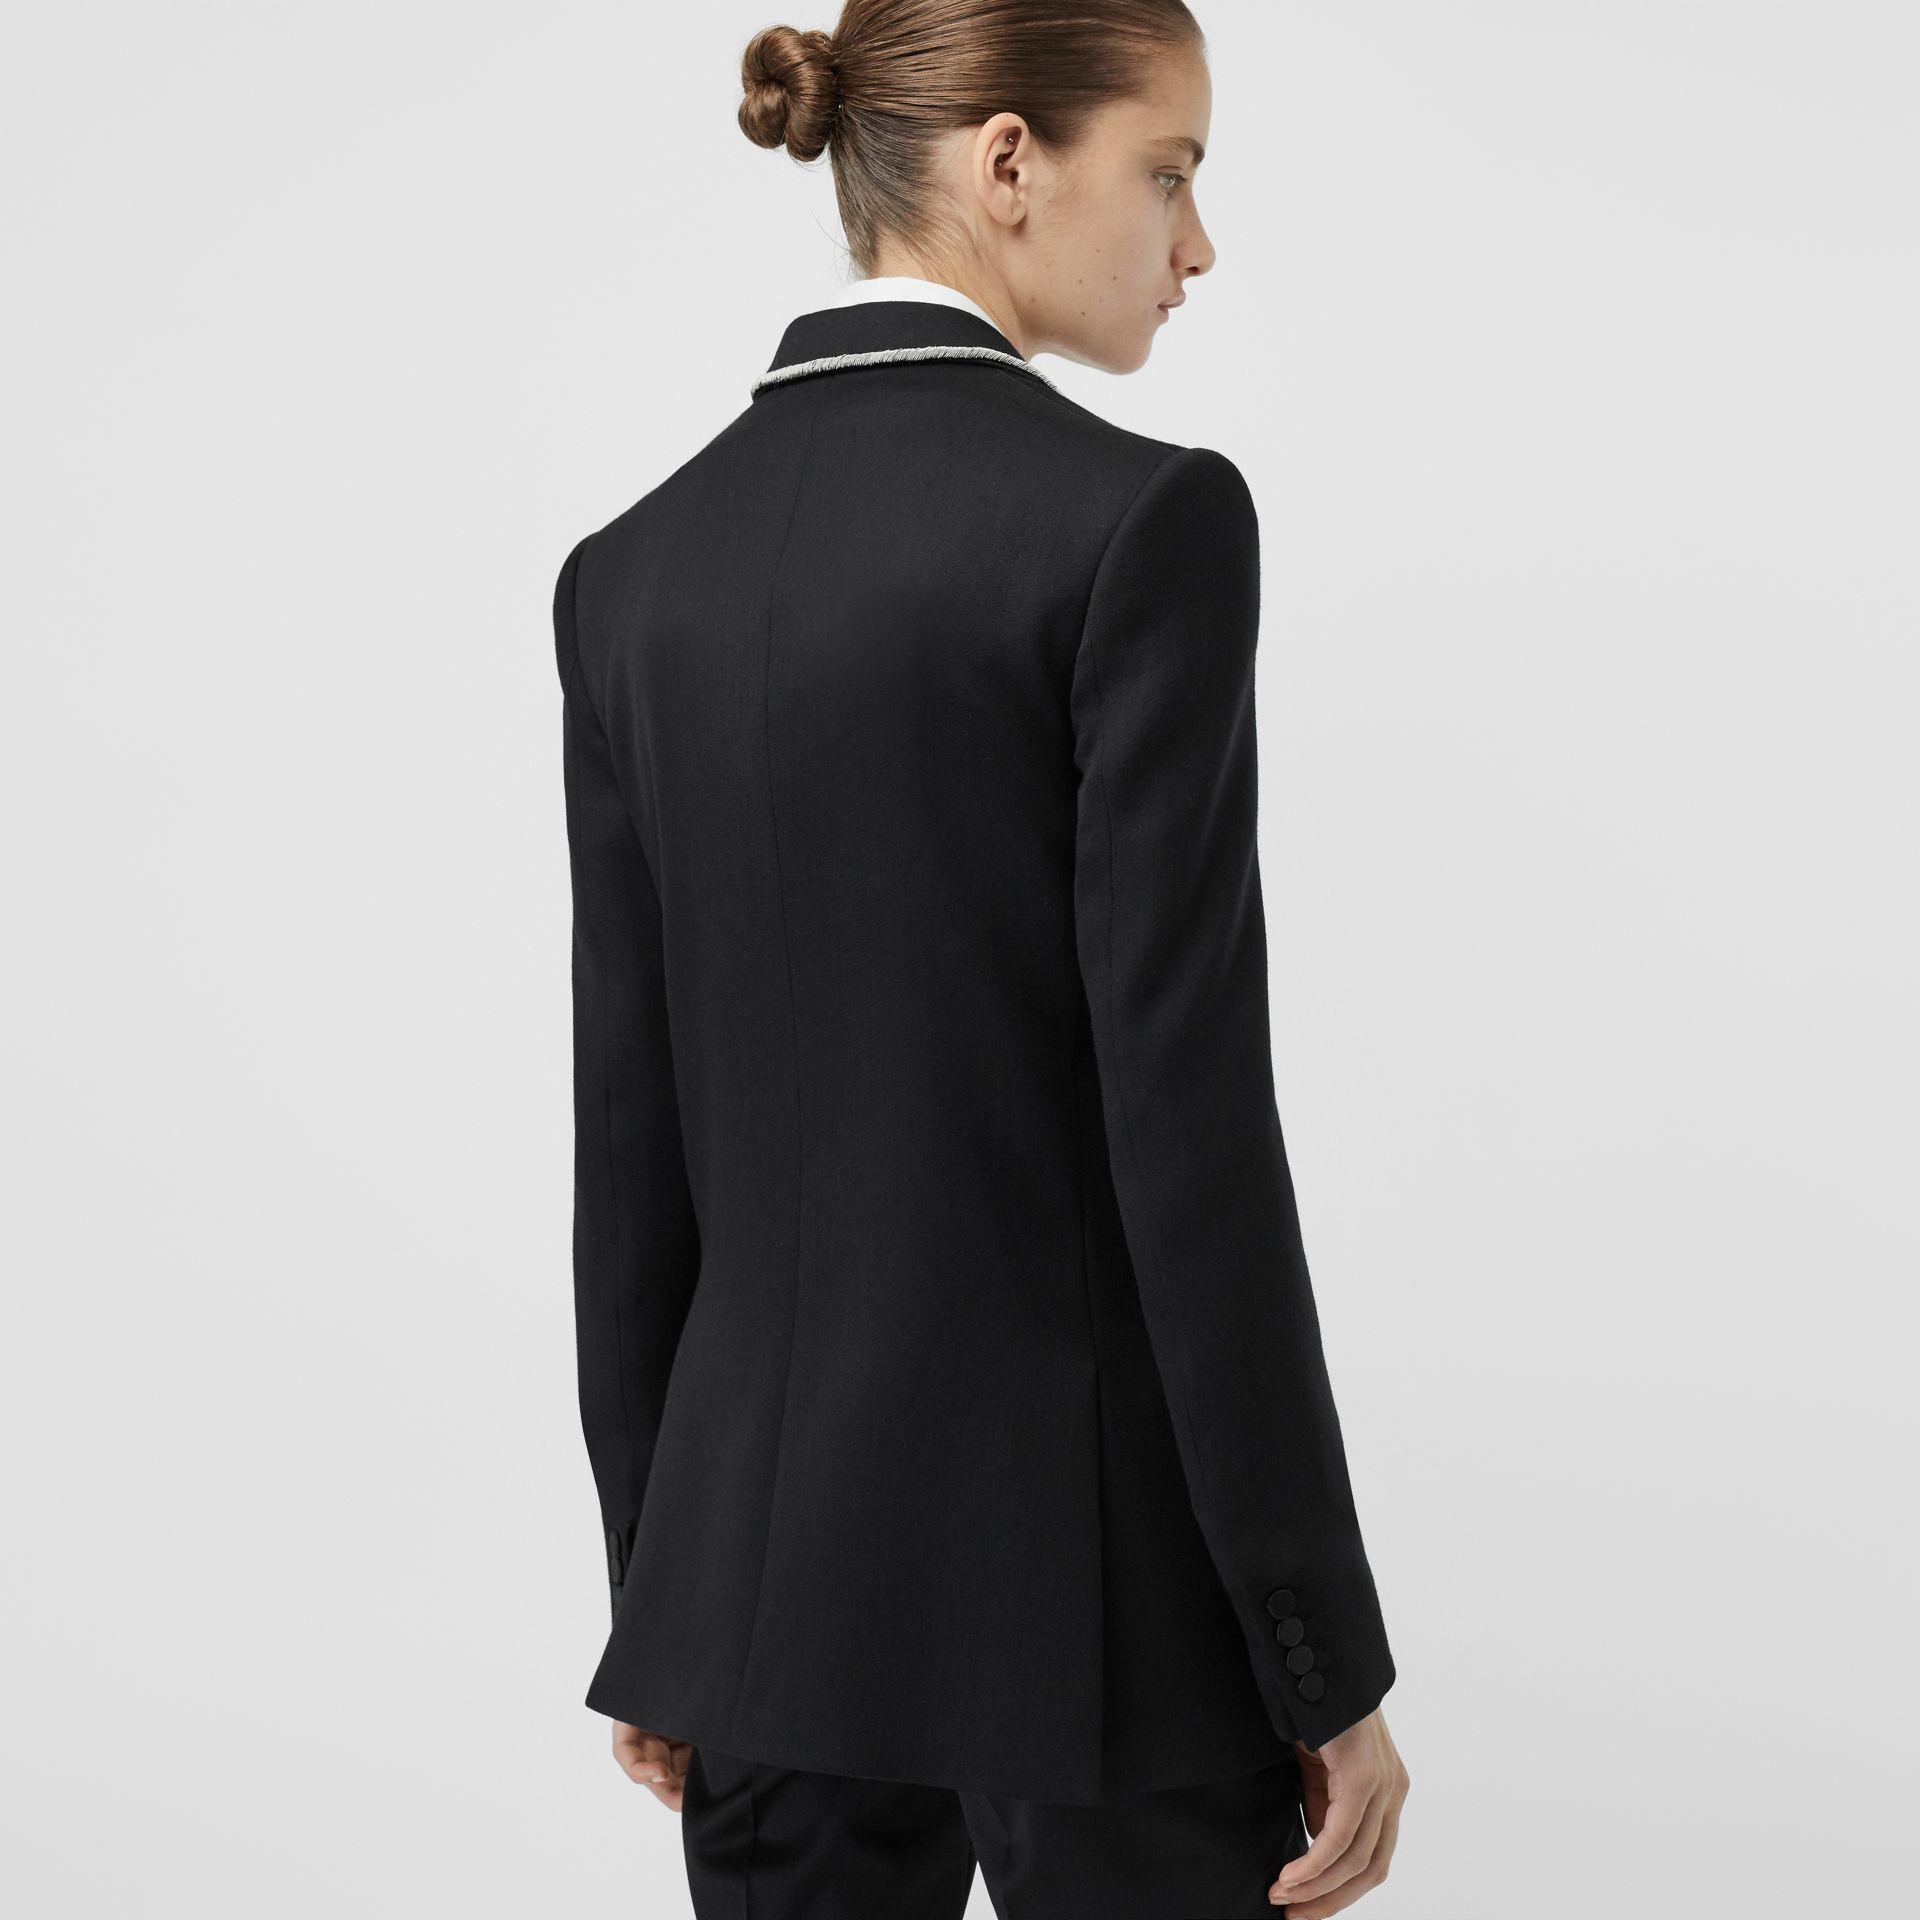 Bullion Stretch Wool Double-breasted Jacket in Black - Women | Burberry United Kingdom - gallery image 2